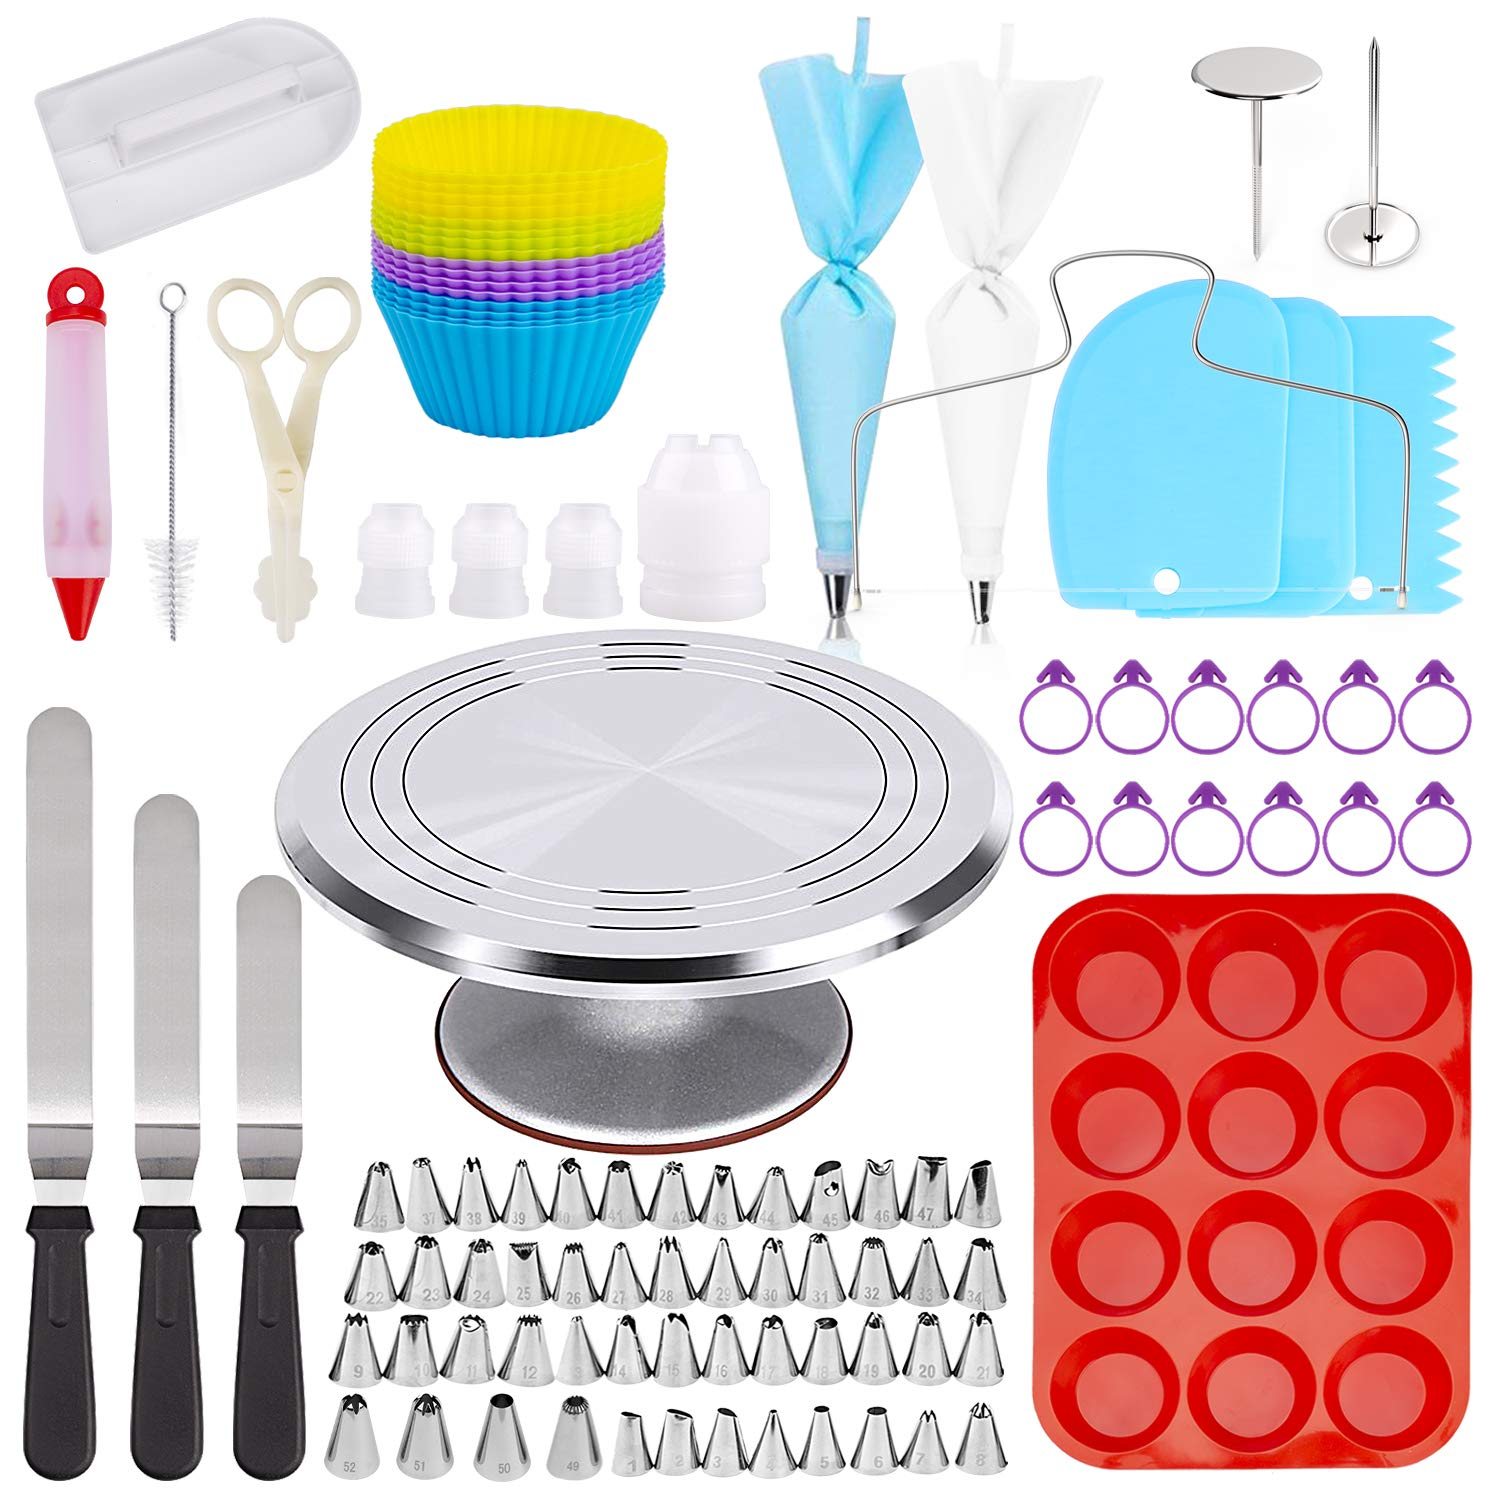 Omew Cake Decorating Supplies Kit, 145 pieces - Aluminium Rotating Stand, Disposable and Reusable Piping Bags, Silicone Cupcake Molds, Cake Scrapers, Spatulas & Many More Decoration. by Omew